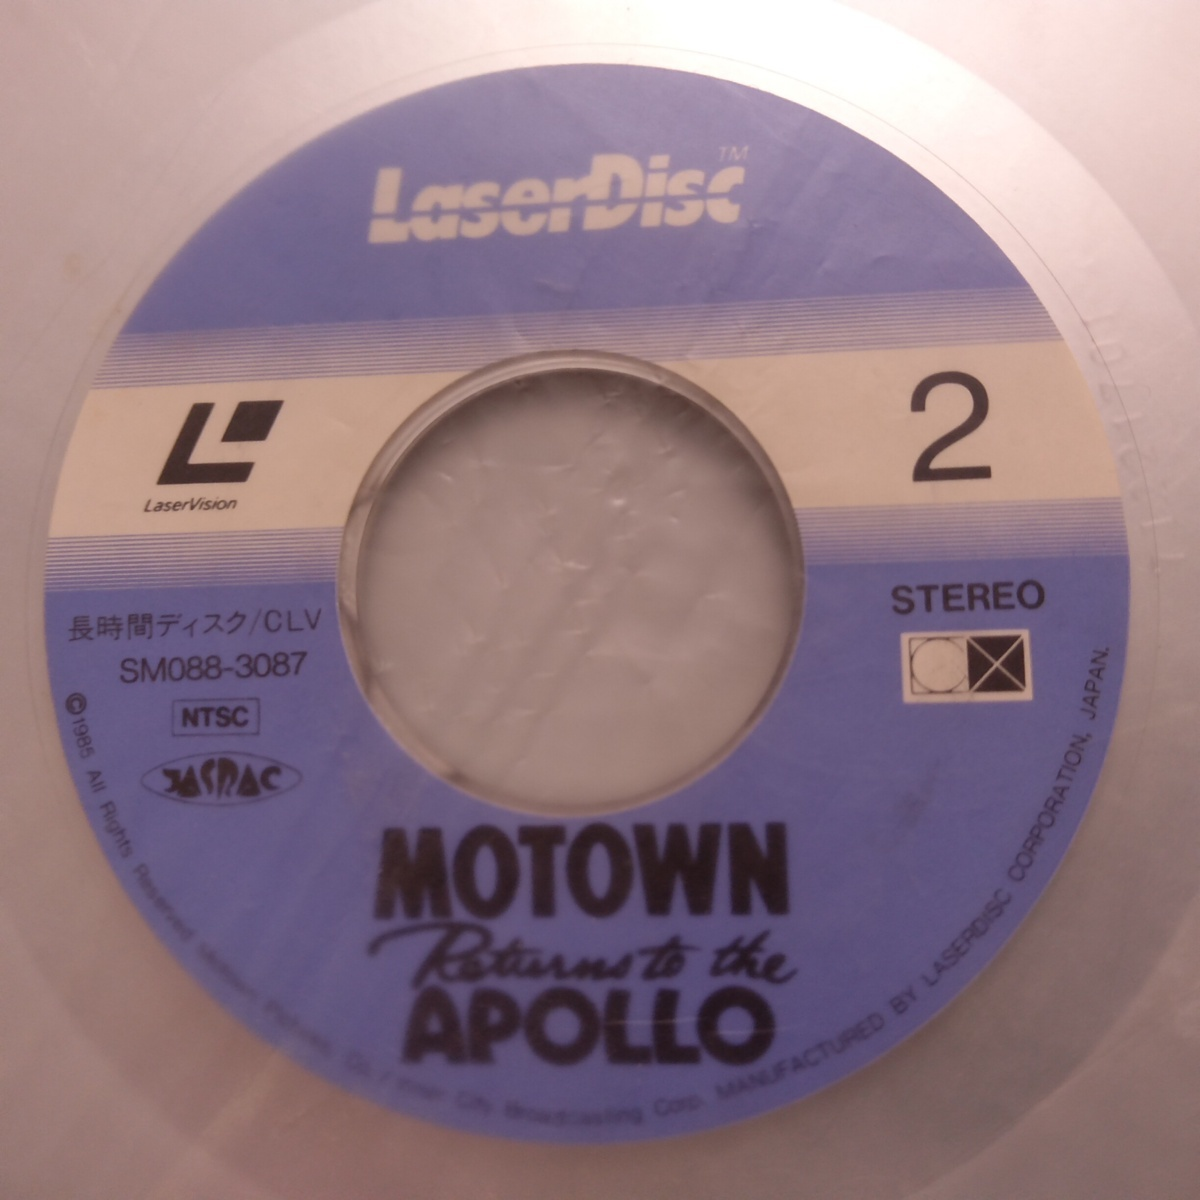 LD MOTOWN RETURN TO THE APOLLO ★ STEVIE WONDER / DIANA ROSS / JAMES BROWN / COMMODORES etc ★レーザーディスク2枚組 [5691RP_画像3